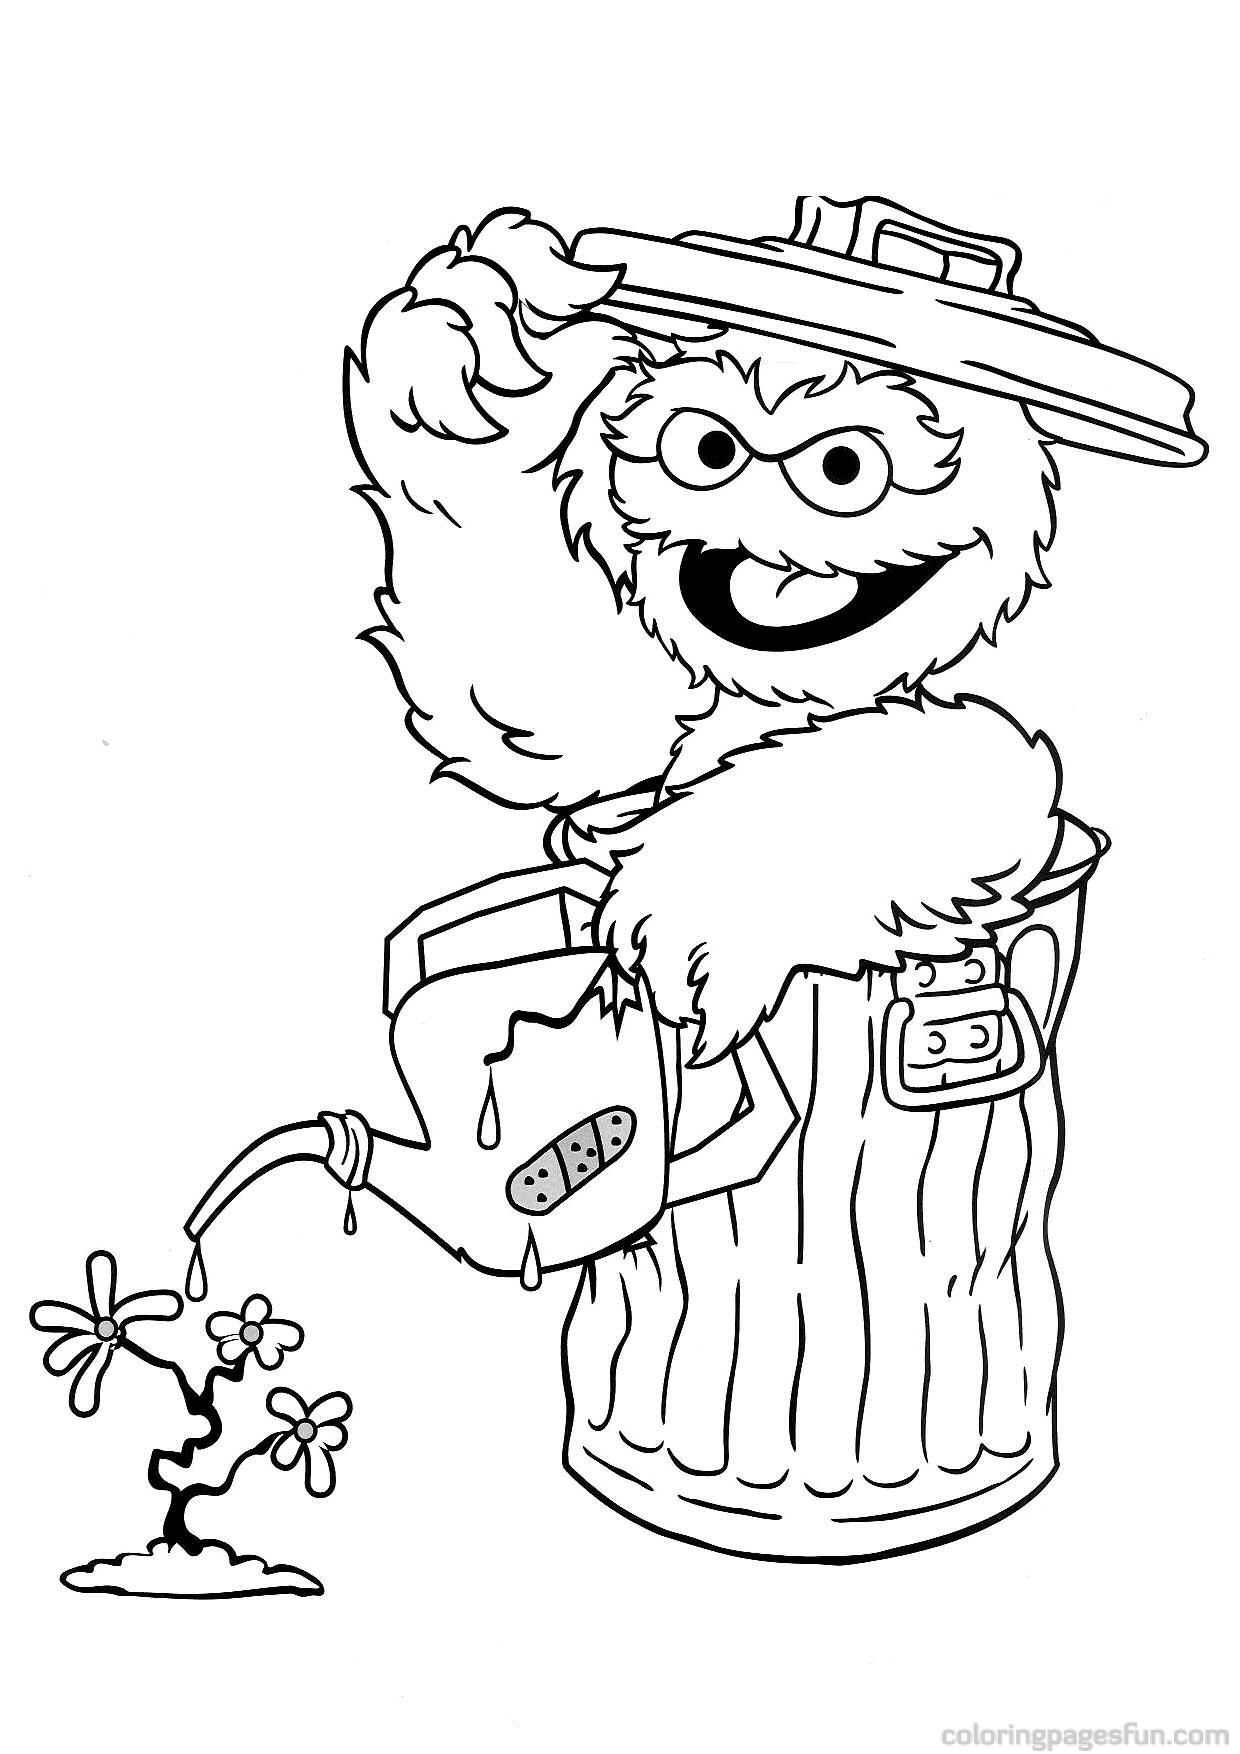 1240x1754 Sesame Street Coloring Pages